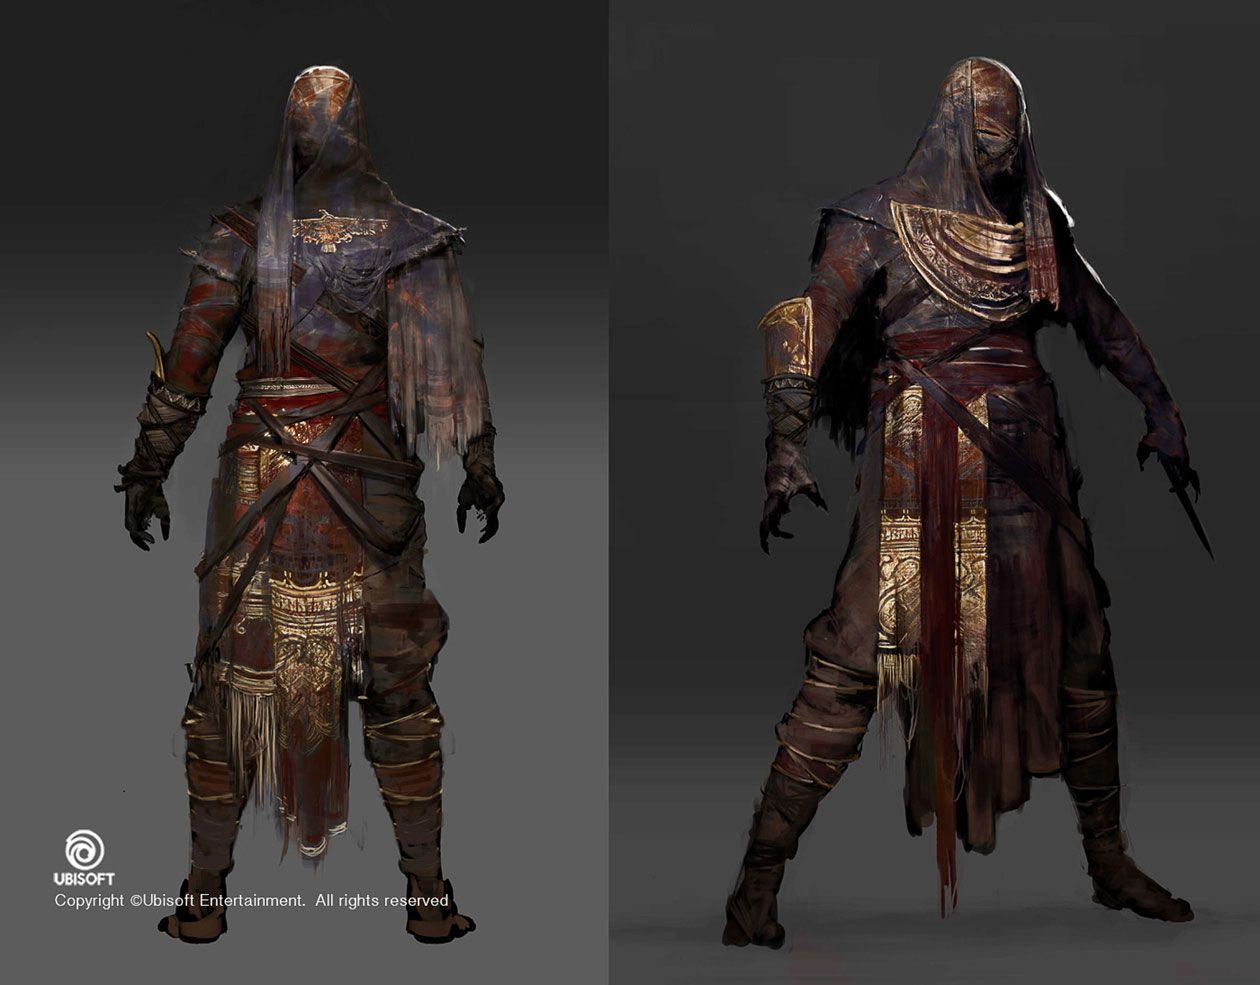 Mummy Outfit From Assassin S Creed Origins With Images Concept